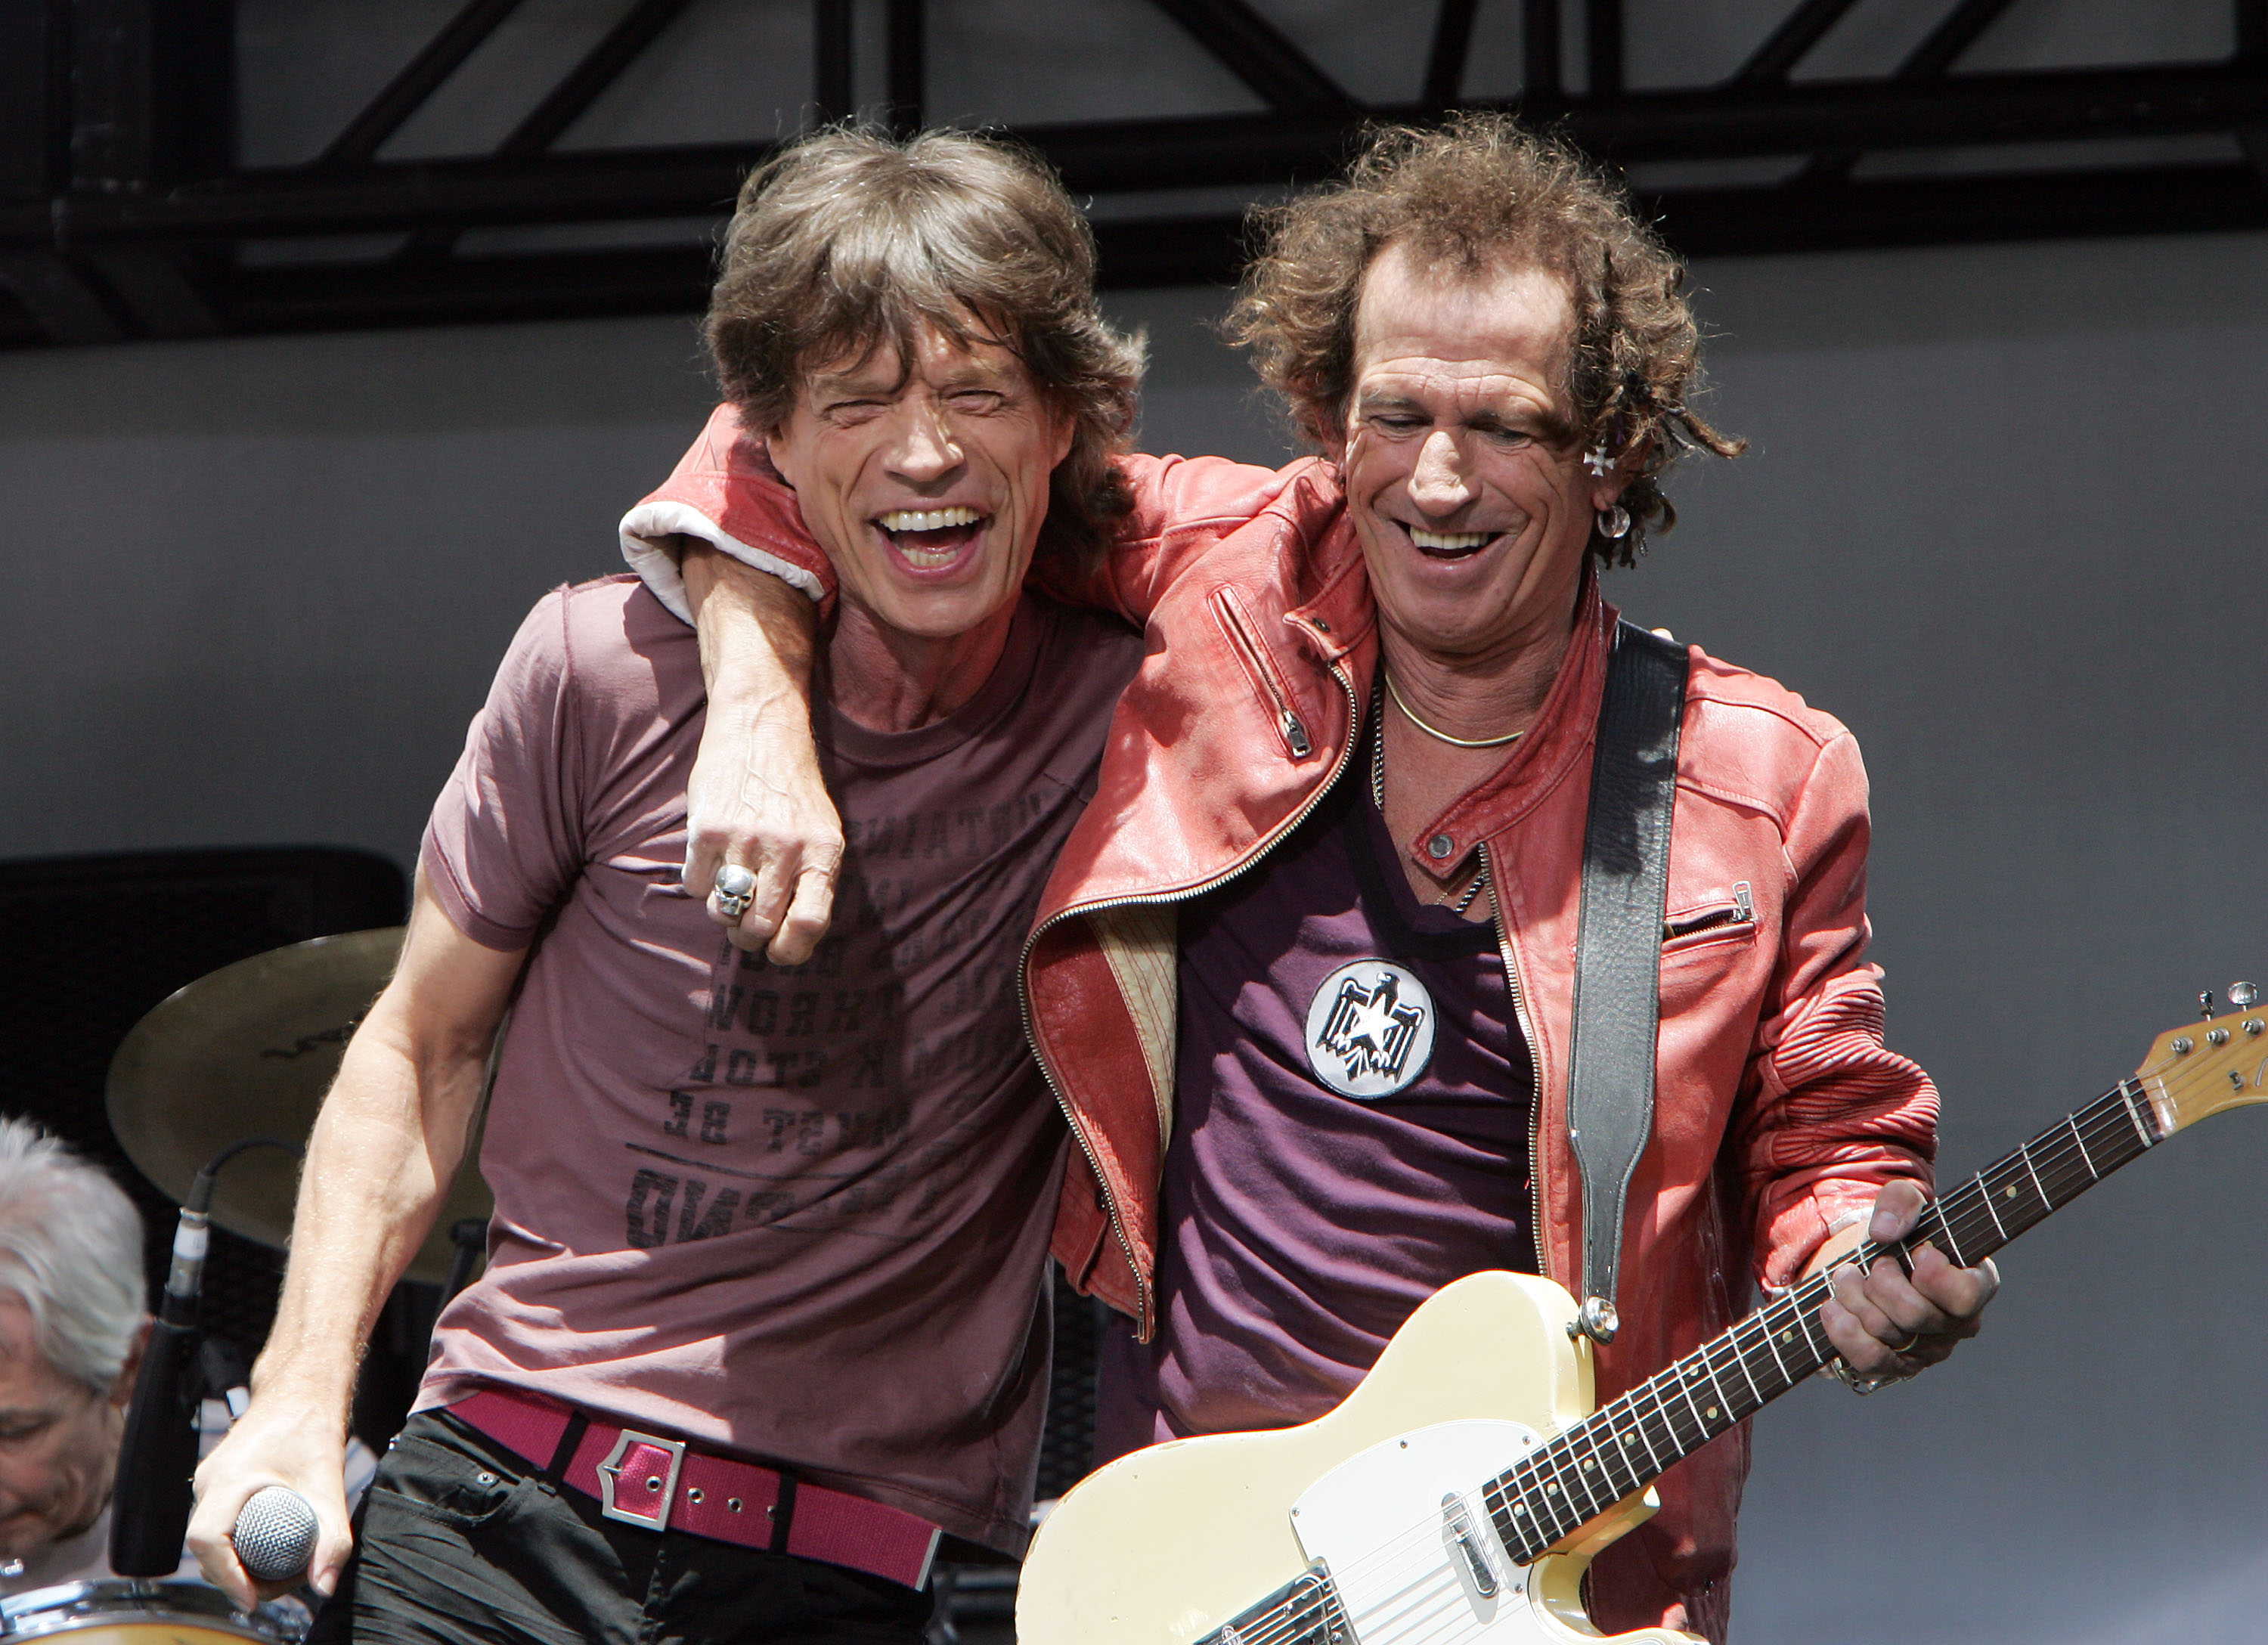 NEW YORK - MAY 10:  Keith Richards (R) and Mick Jagger of The Rolling Stones perform onstage during a press conference to announce a world tour at the Julliard Music School May 10, 2005 in New York City.  (Photo by Scott Gries/Getty Images)